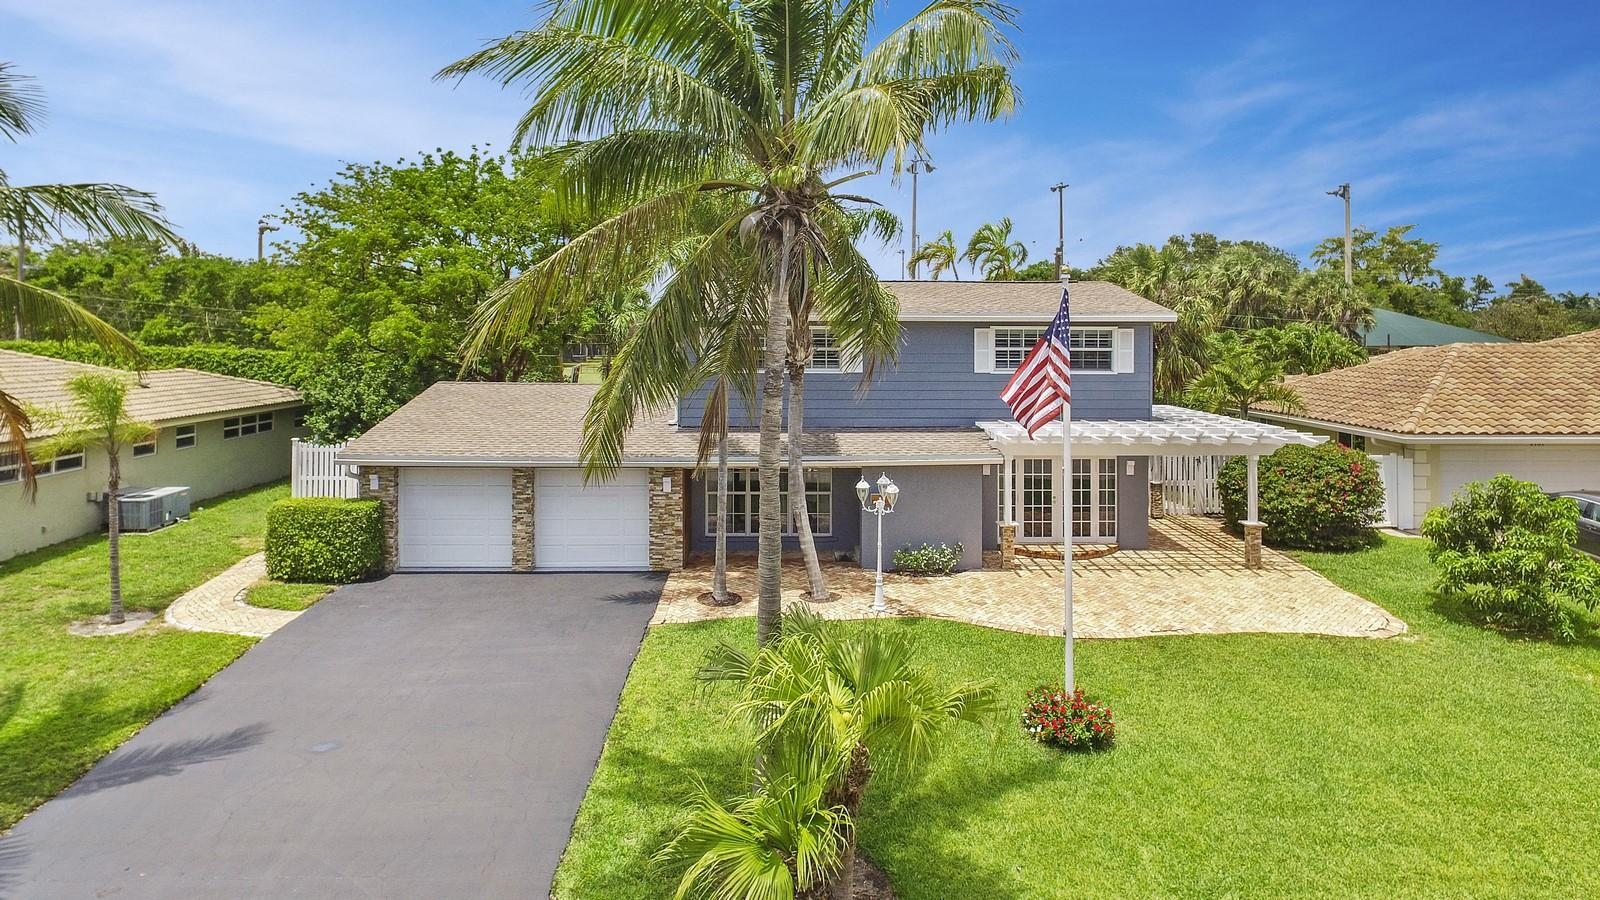 Home for sale in Venetian Isles Lighthouse Point Florida